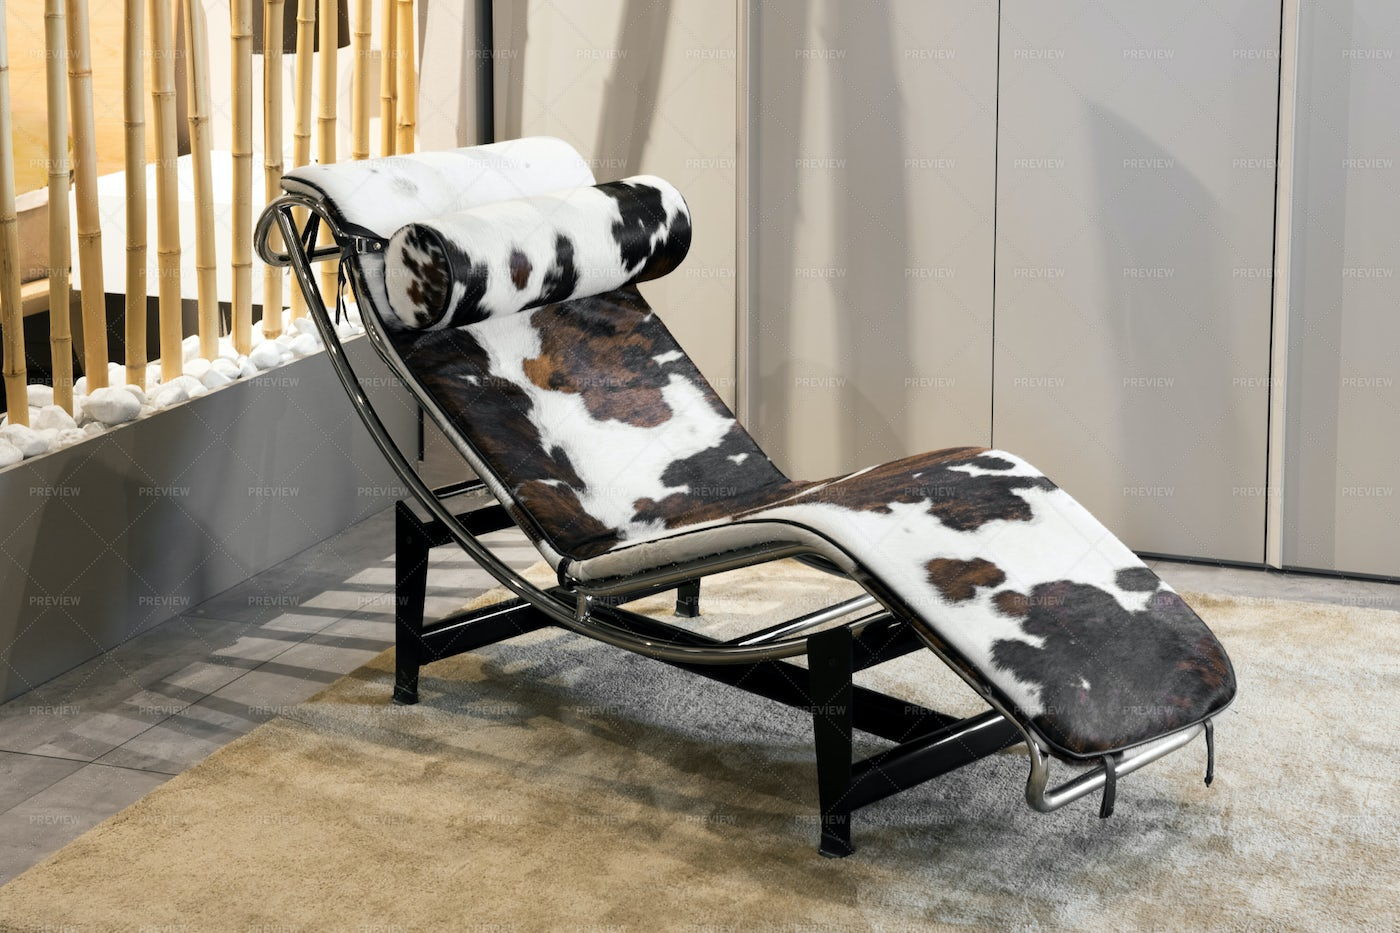 Animal Hide Chaise Lounge: Stock Photos